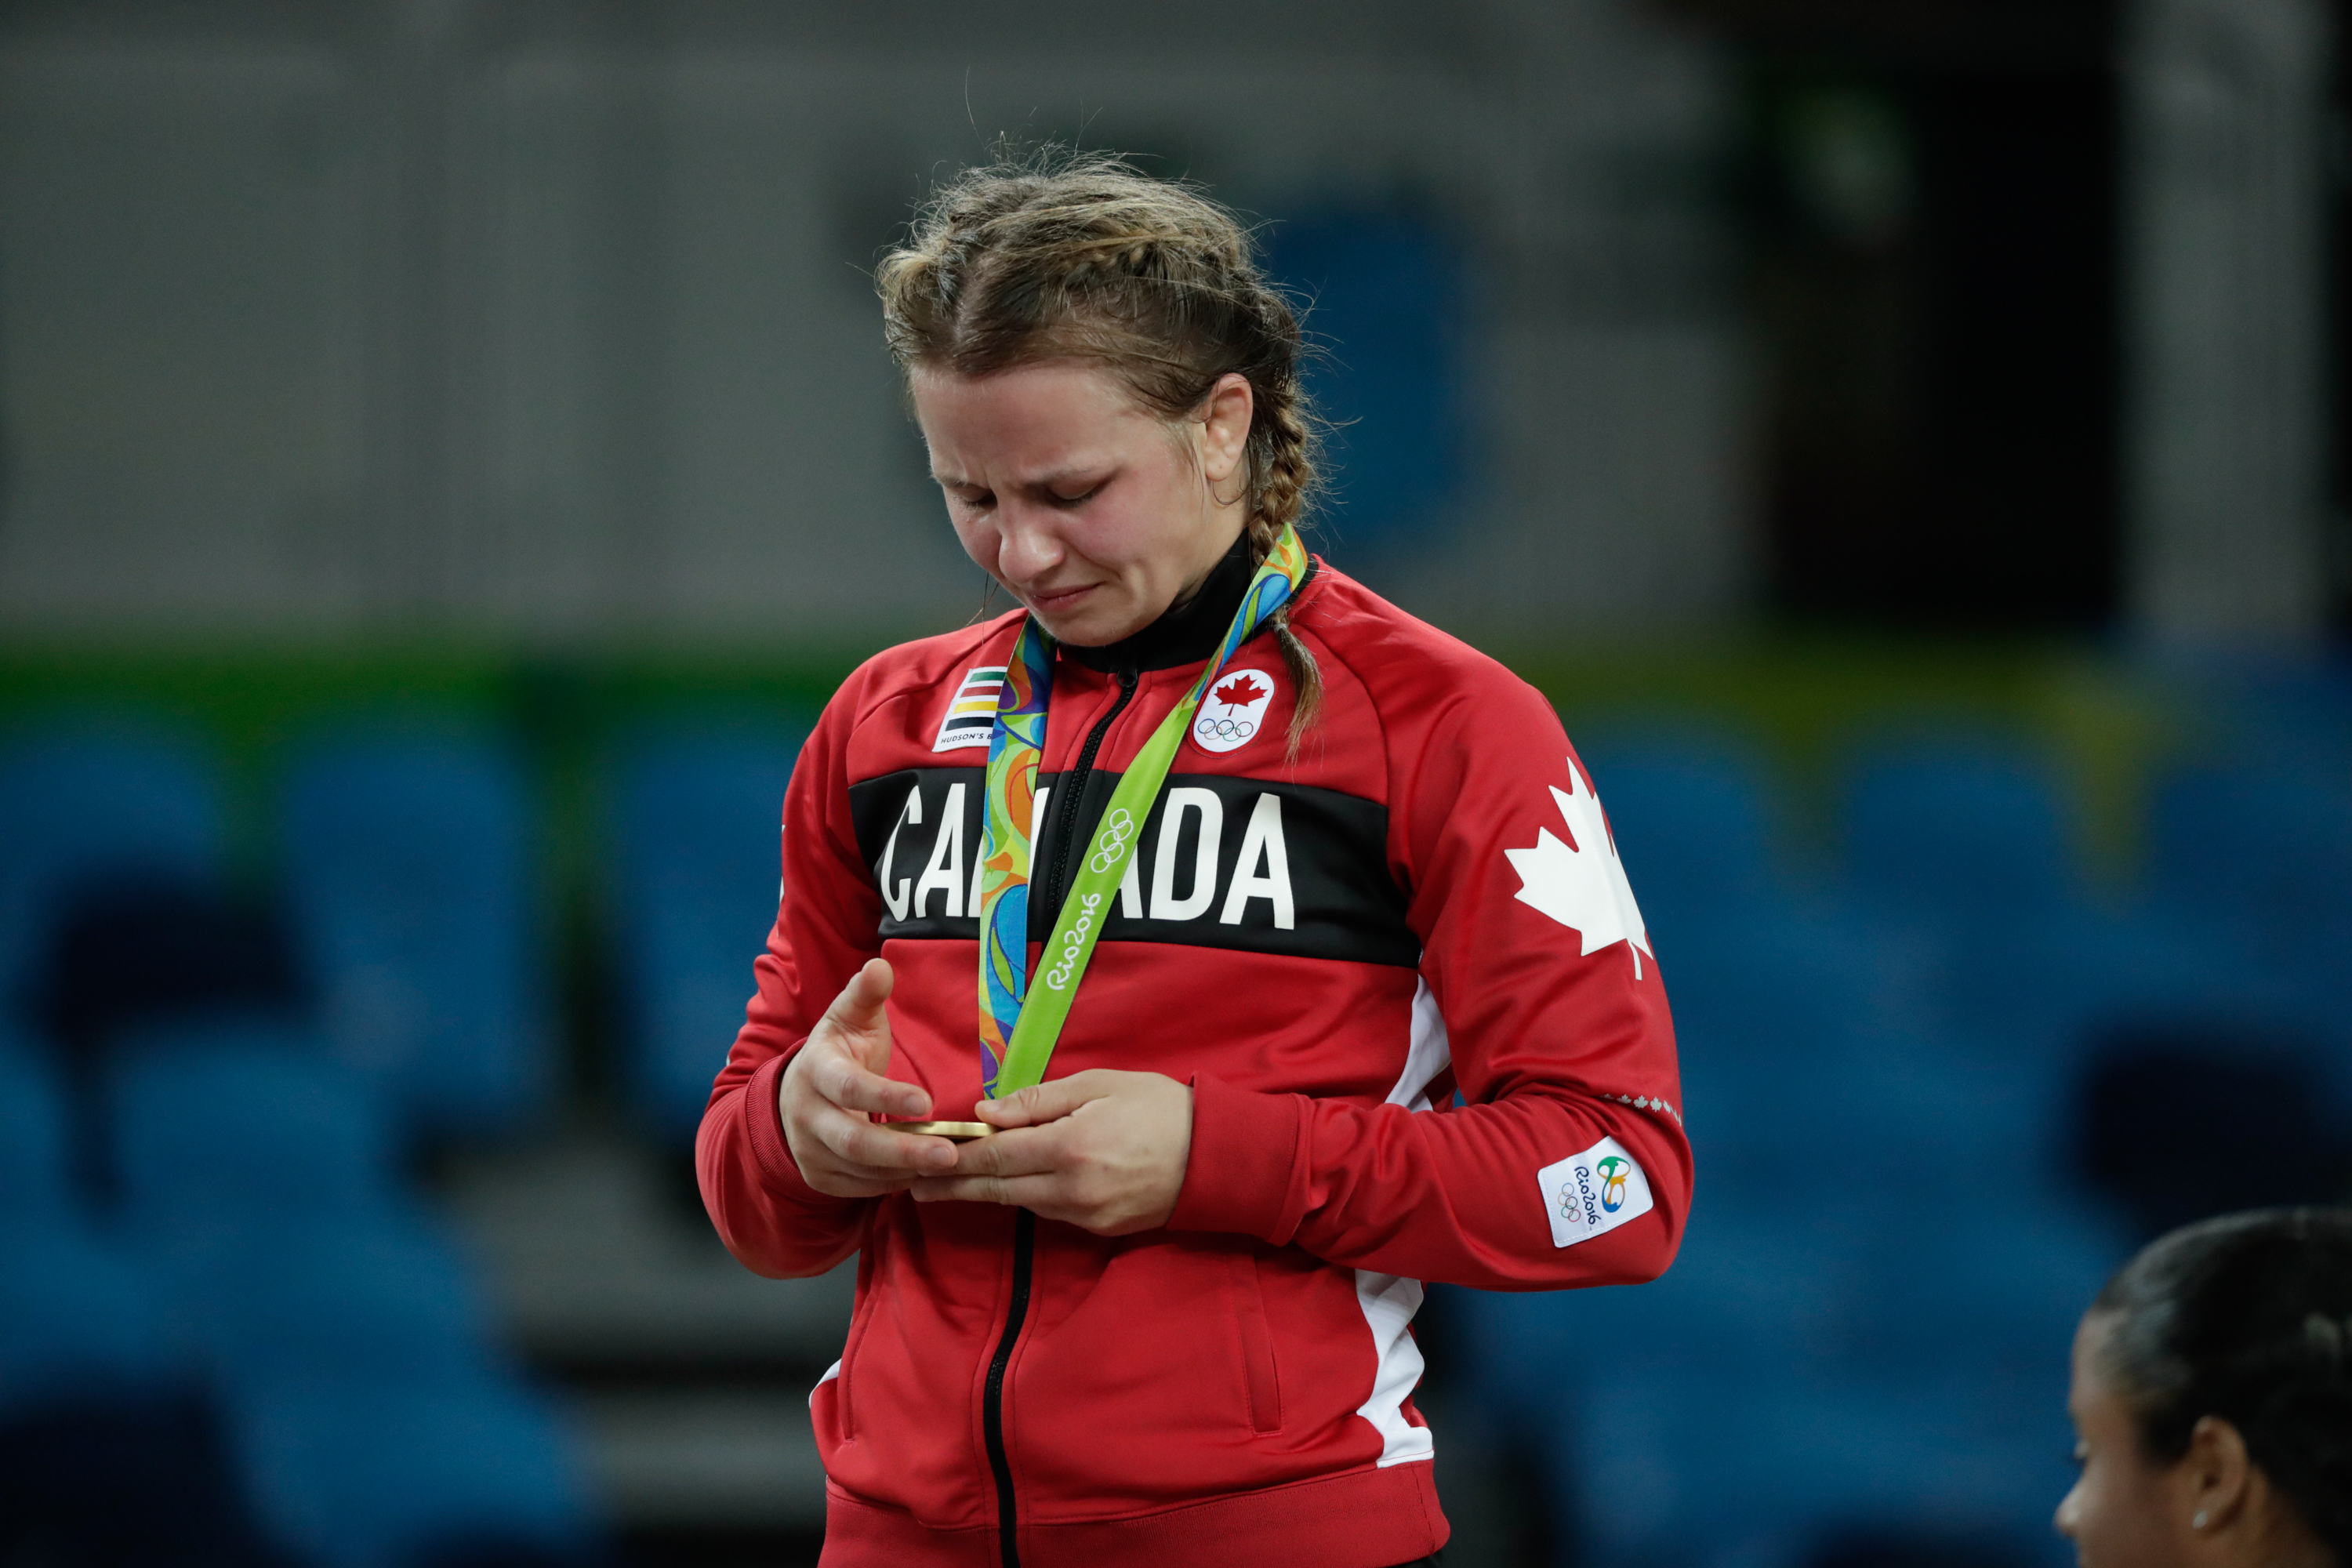 Erica Wiebe looks down at her gold medal while standing on the podium at Rio 2016 (COC/David Jackson)